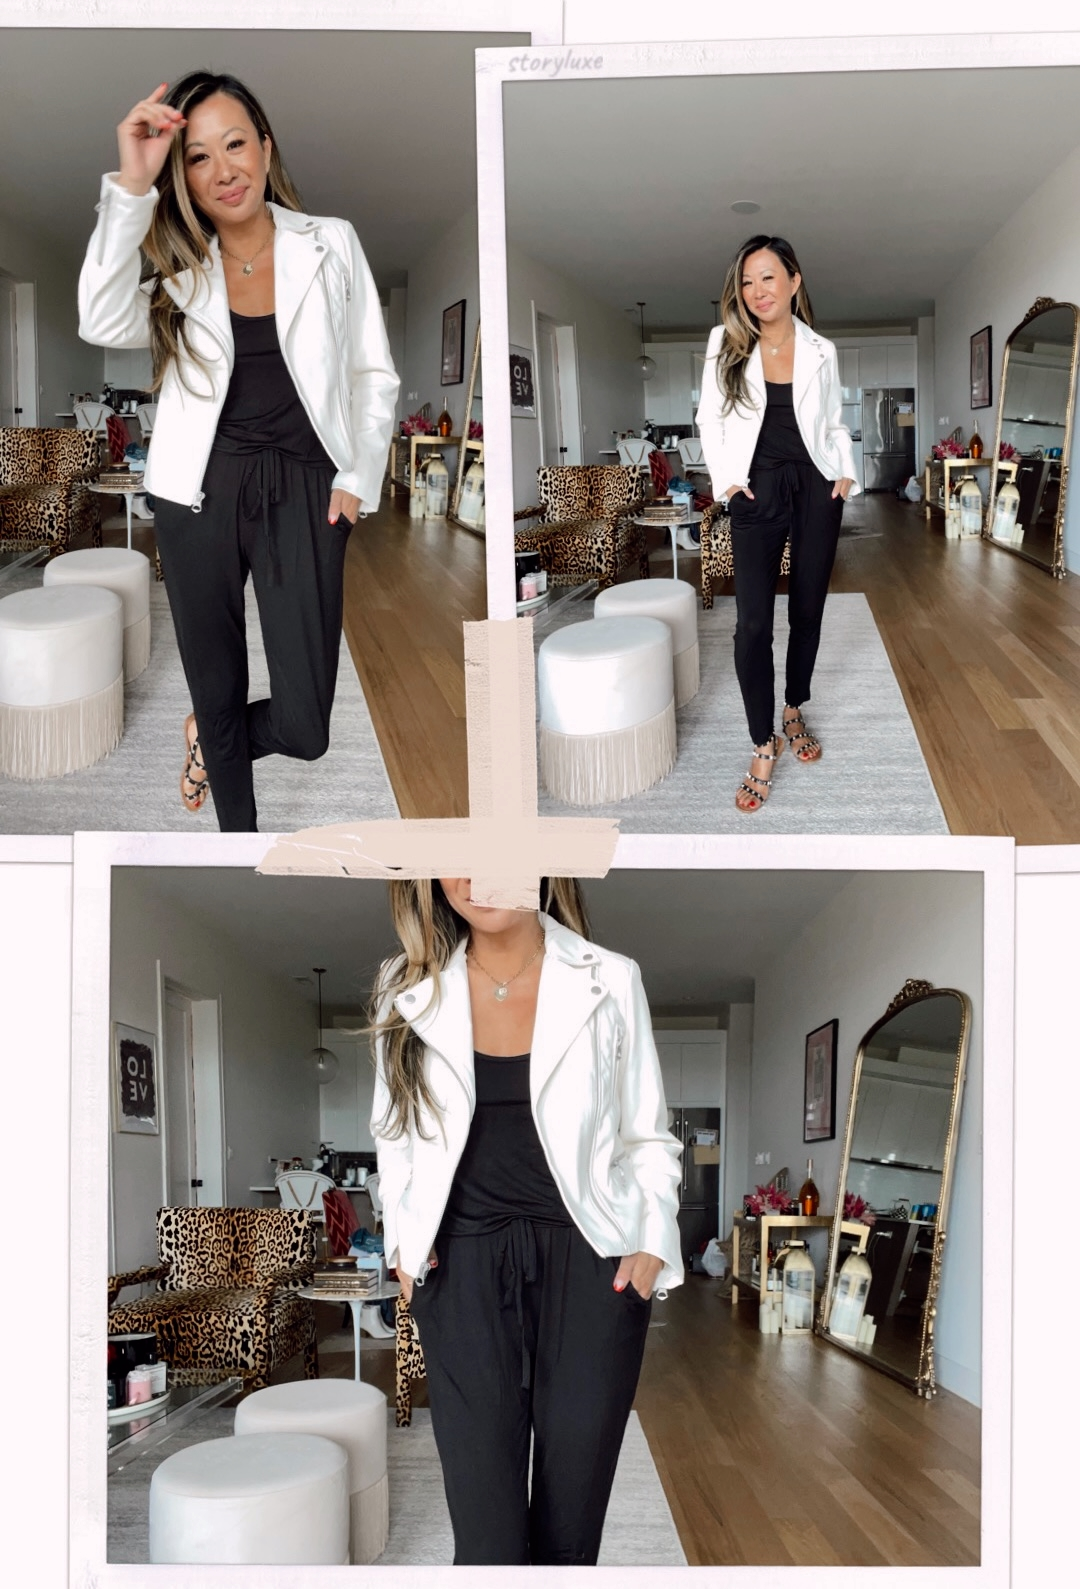 white moto jacket and jumpsuit outfit ideas from Walmart, moto jacket with jumpsuit, jumpsuit outfit ideas, how to style a jumpsuit, women's style, walmart style, walmart outfit ideas, affordable outfit ideas